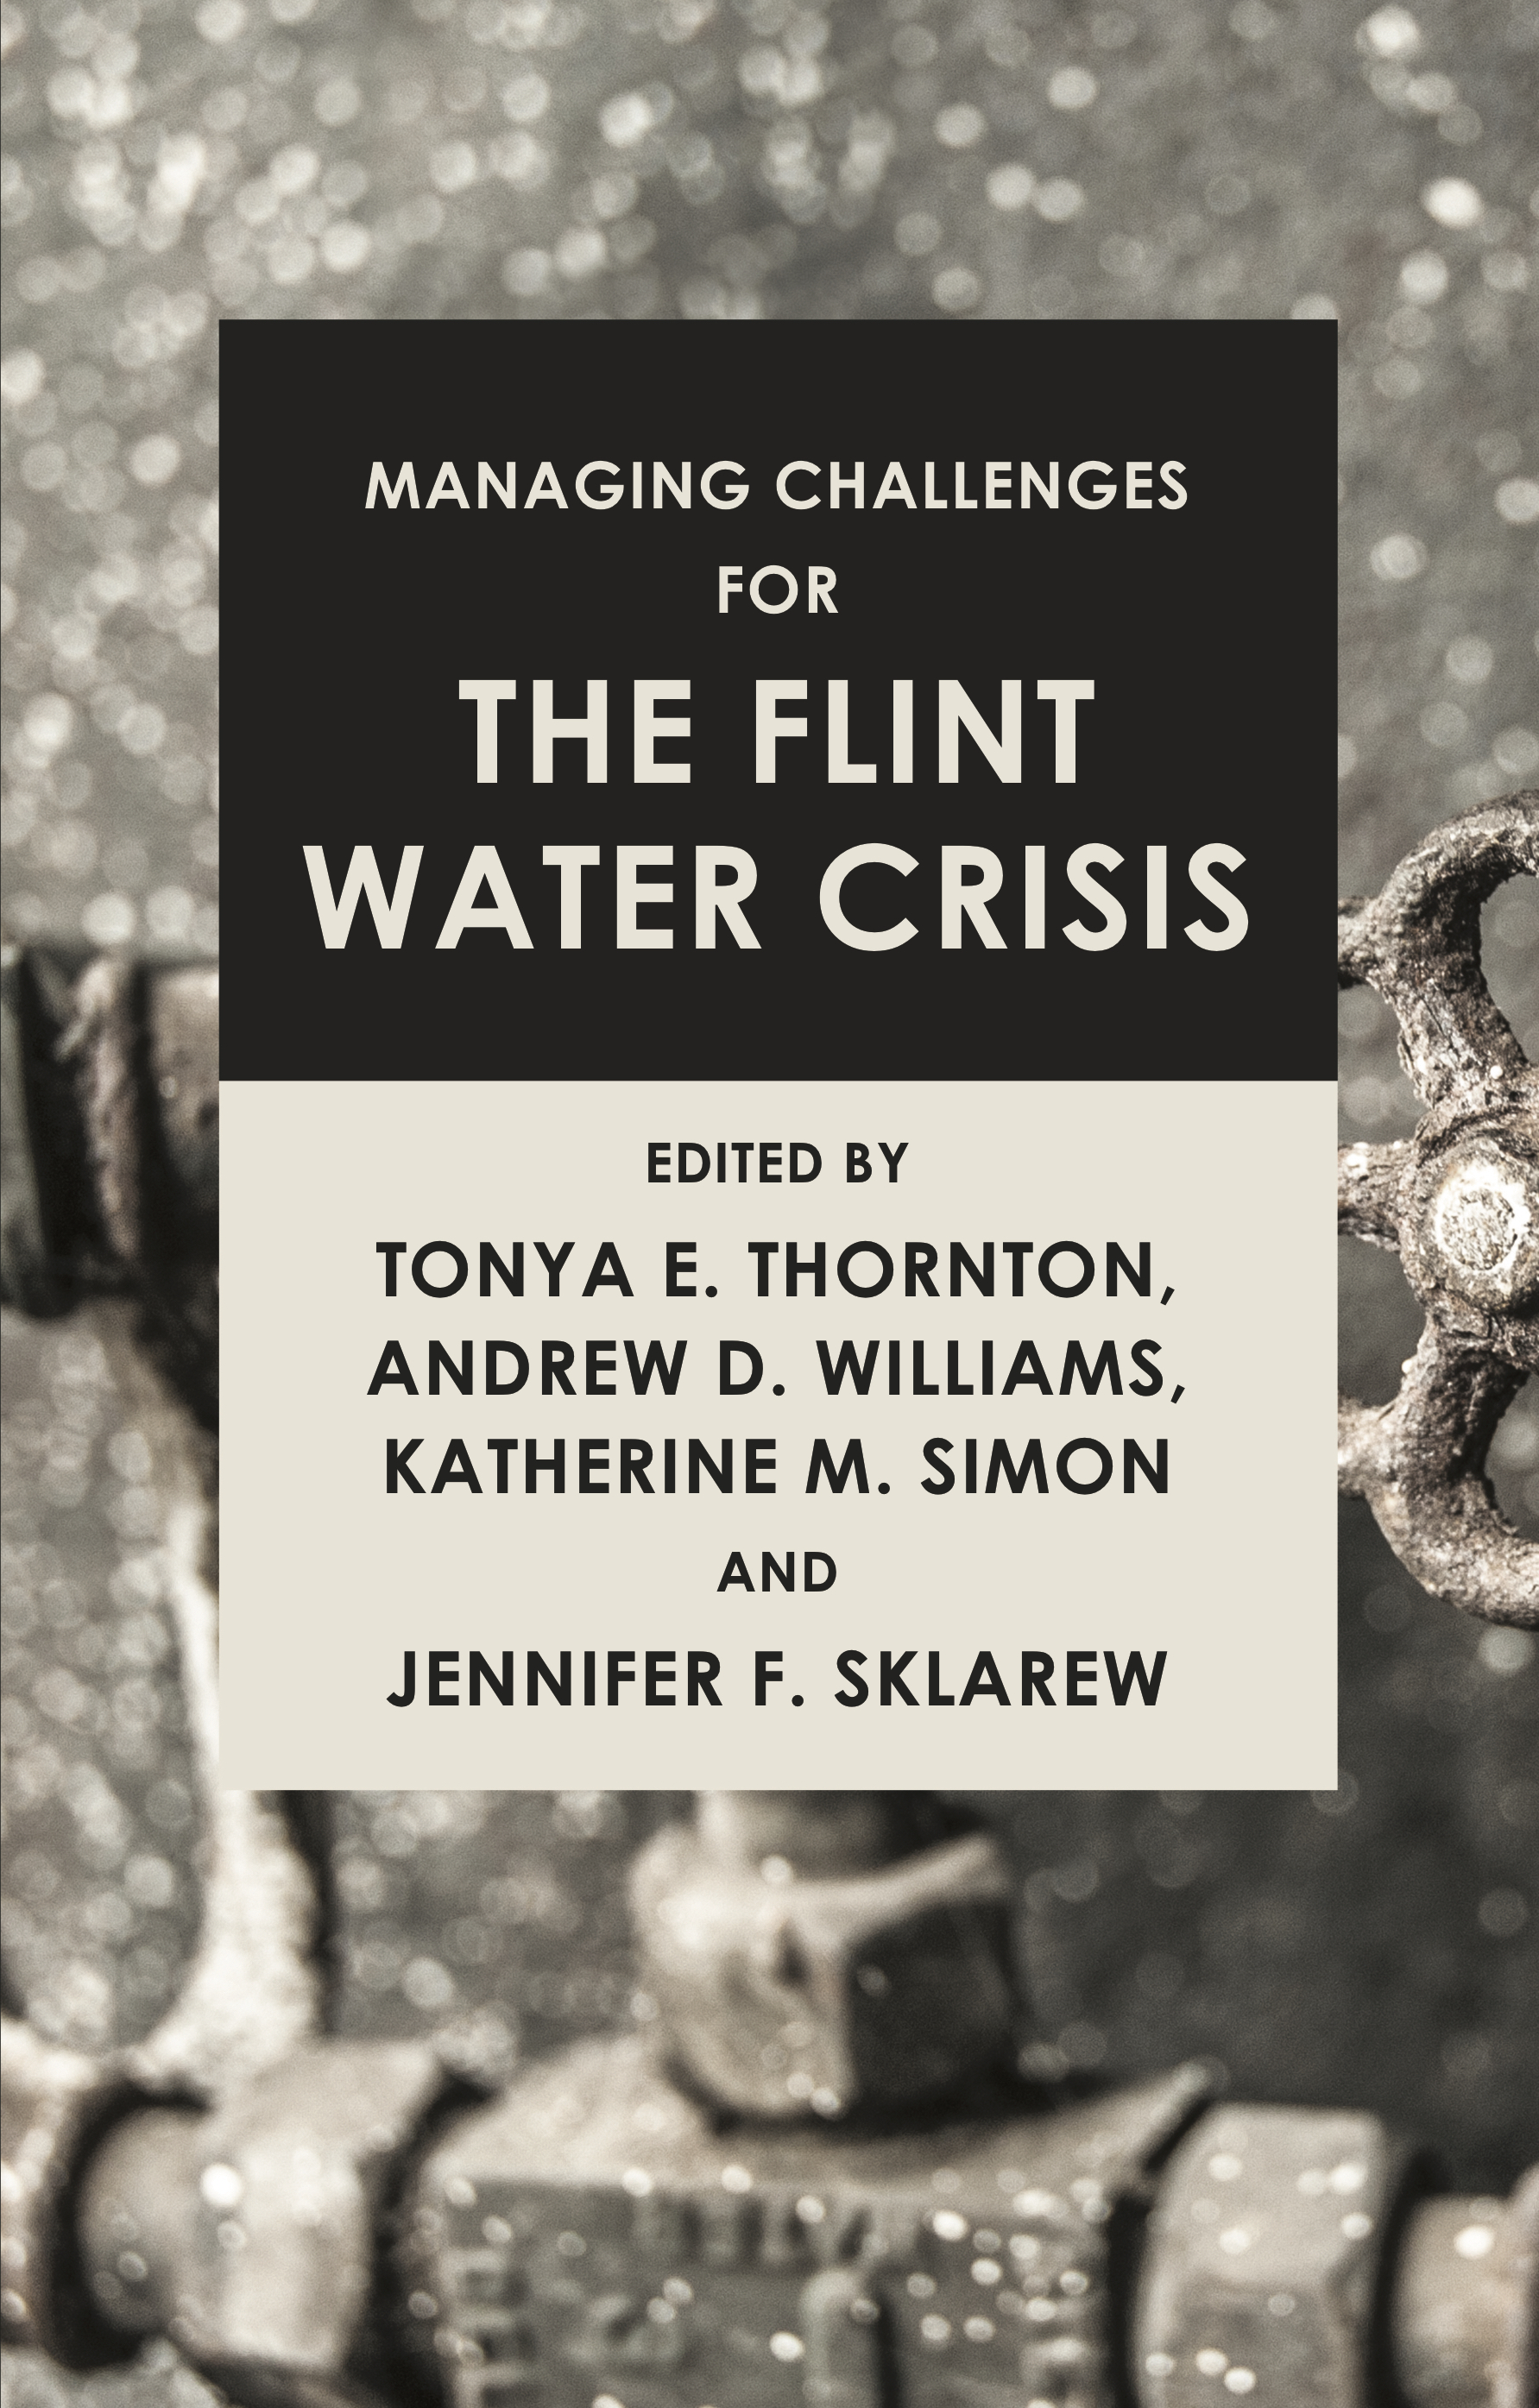 Managing Challenges for the Flint Water Crisis